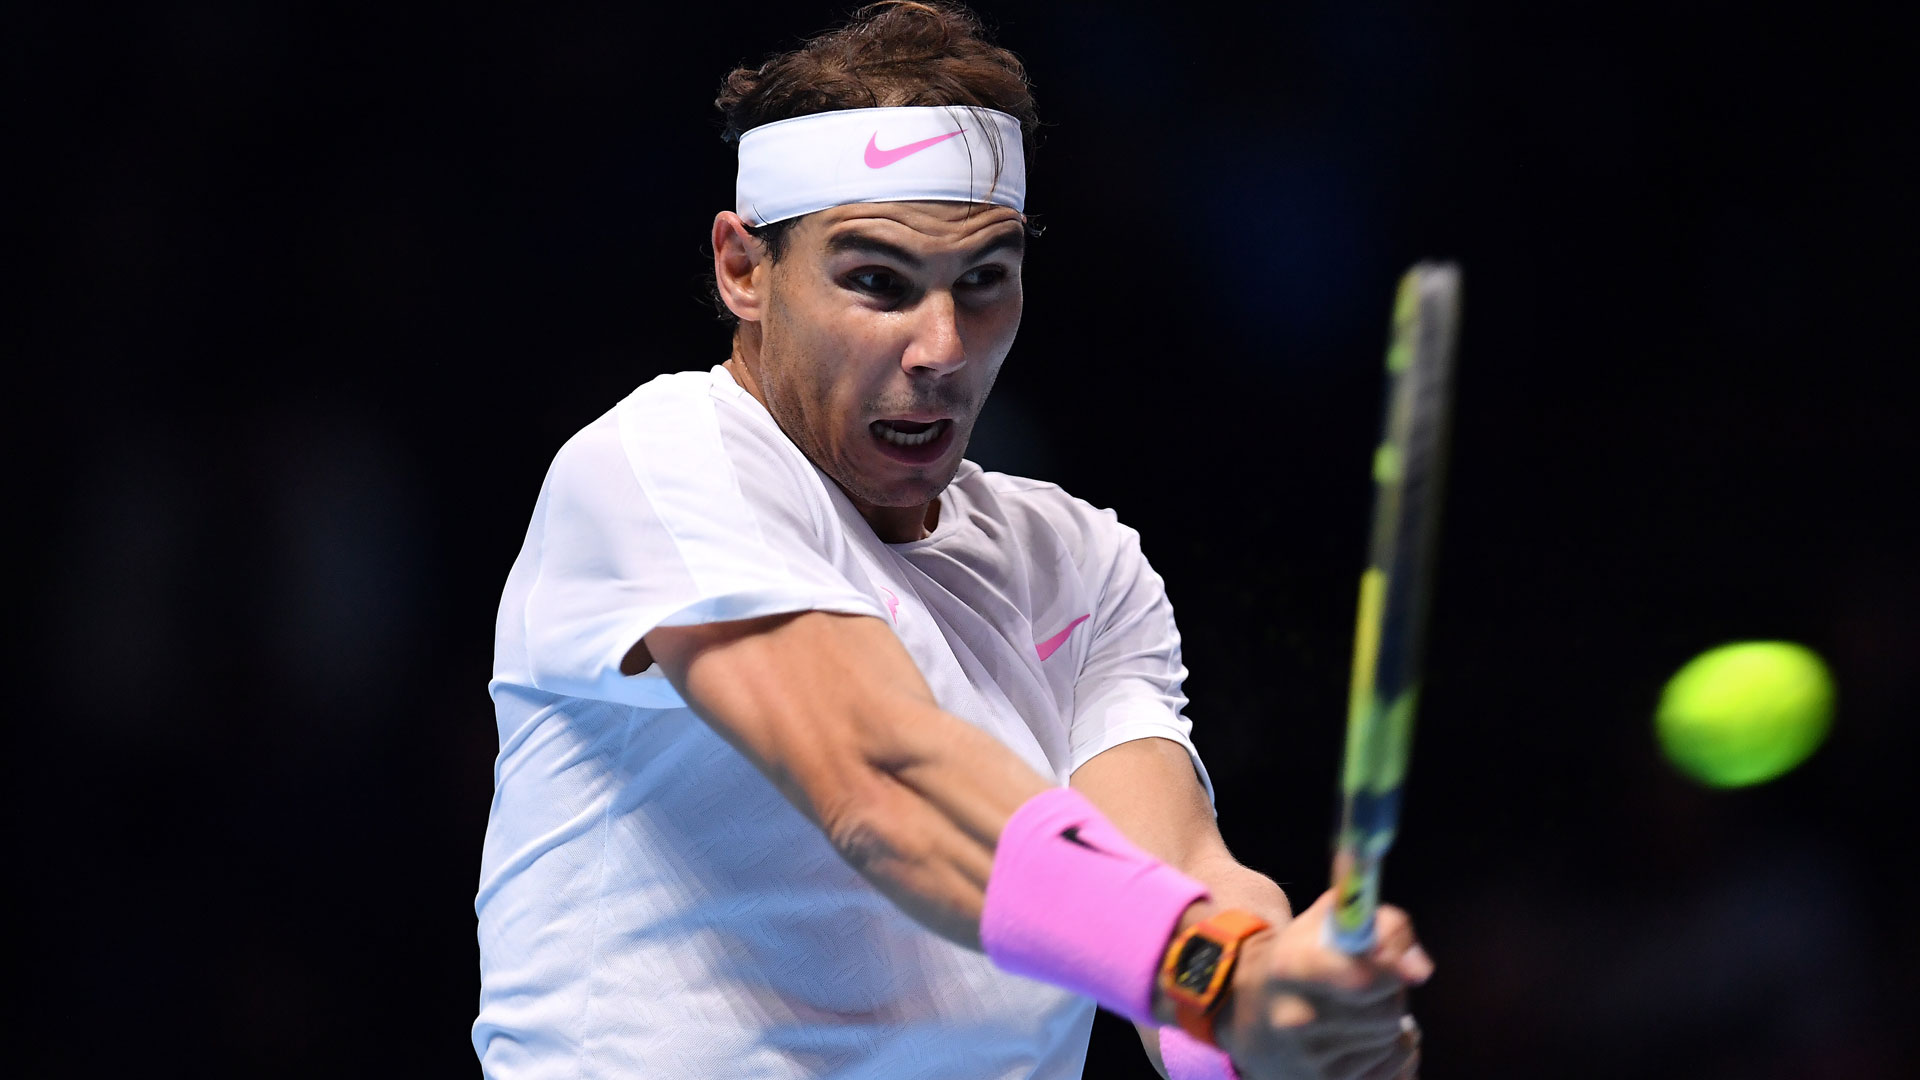 nadal-nitto-atp-finals-2019-wednesday